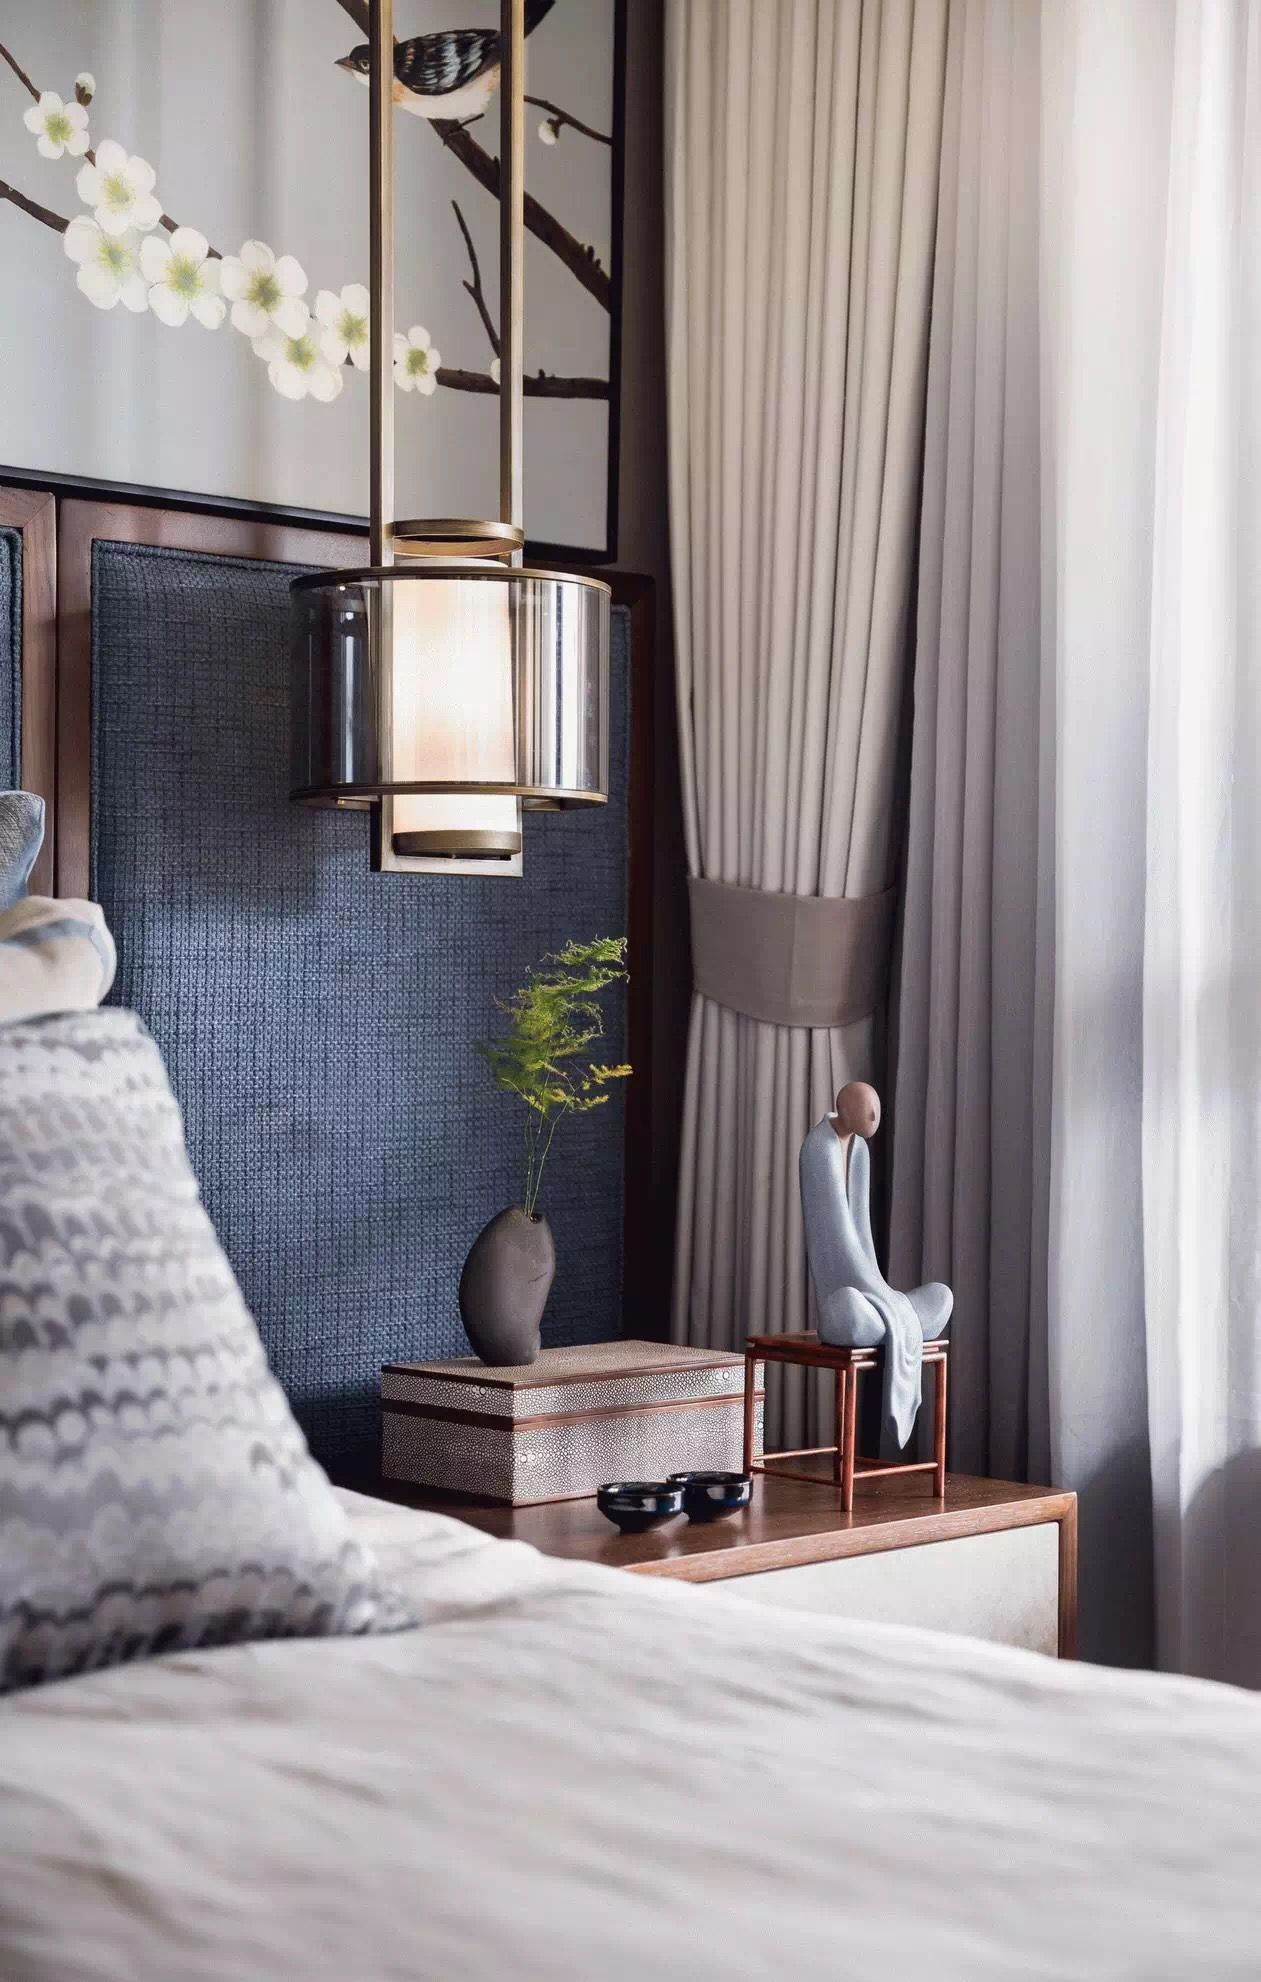 Pin by JonAs Ng on Lighting | Pinterest | Bedrooms, Interiors and ...